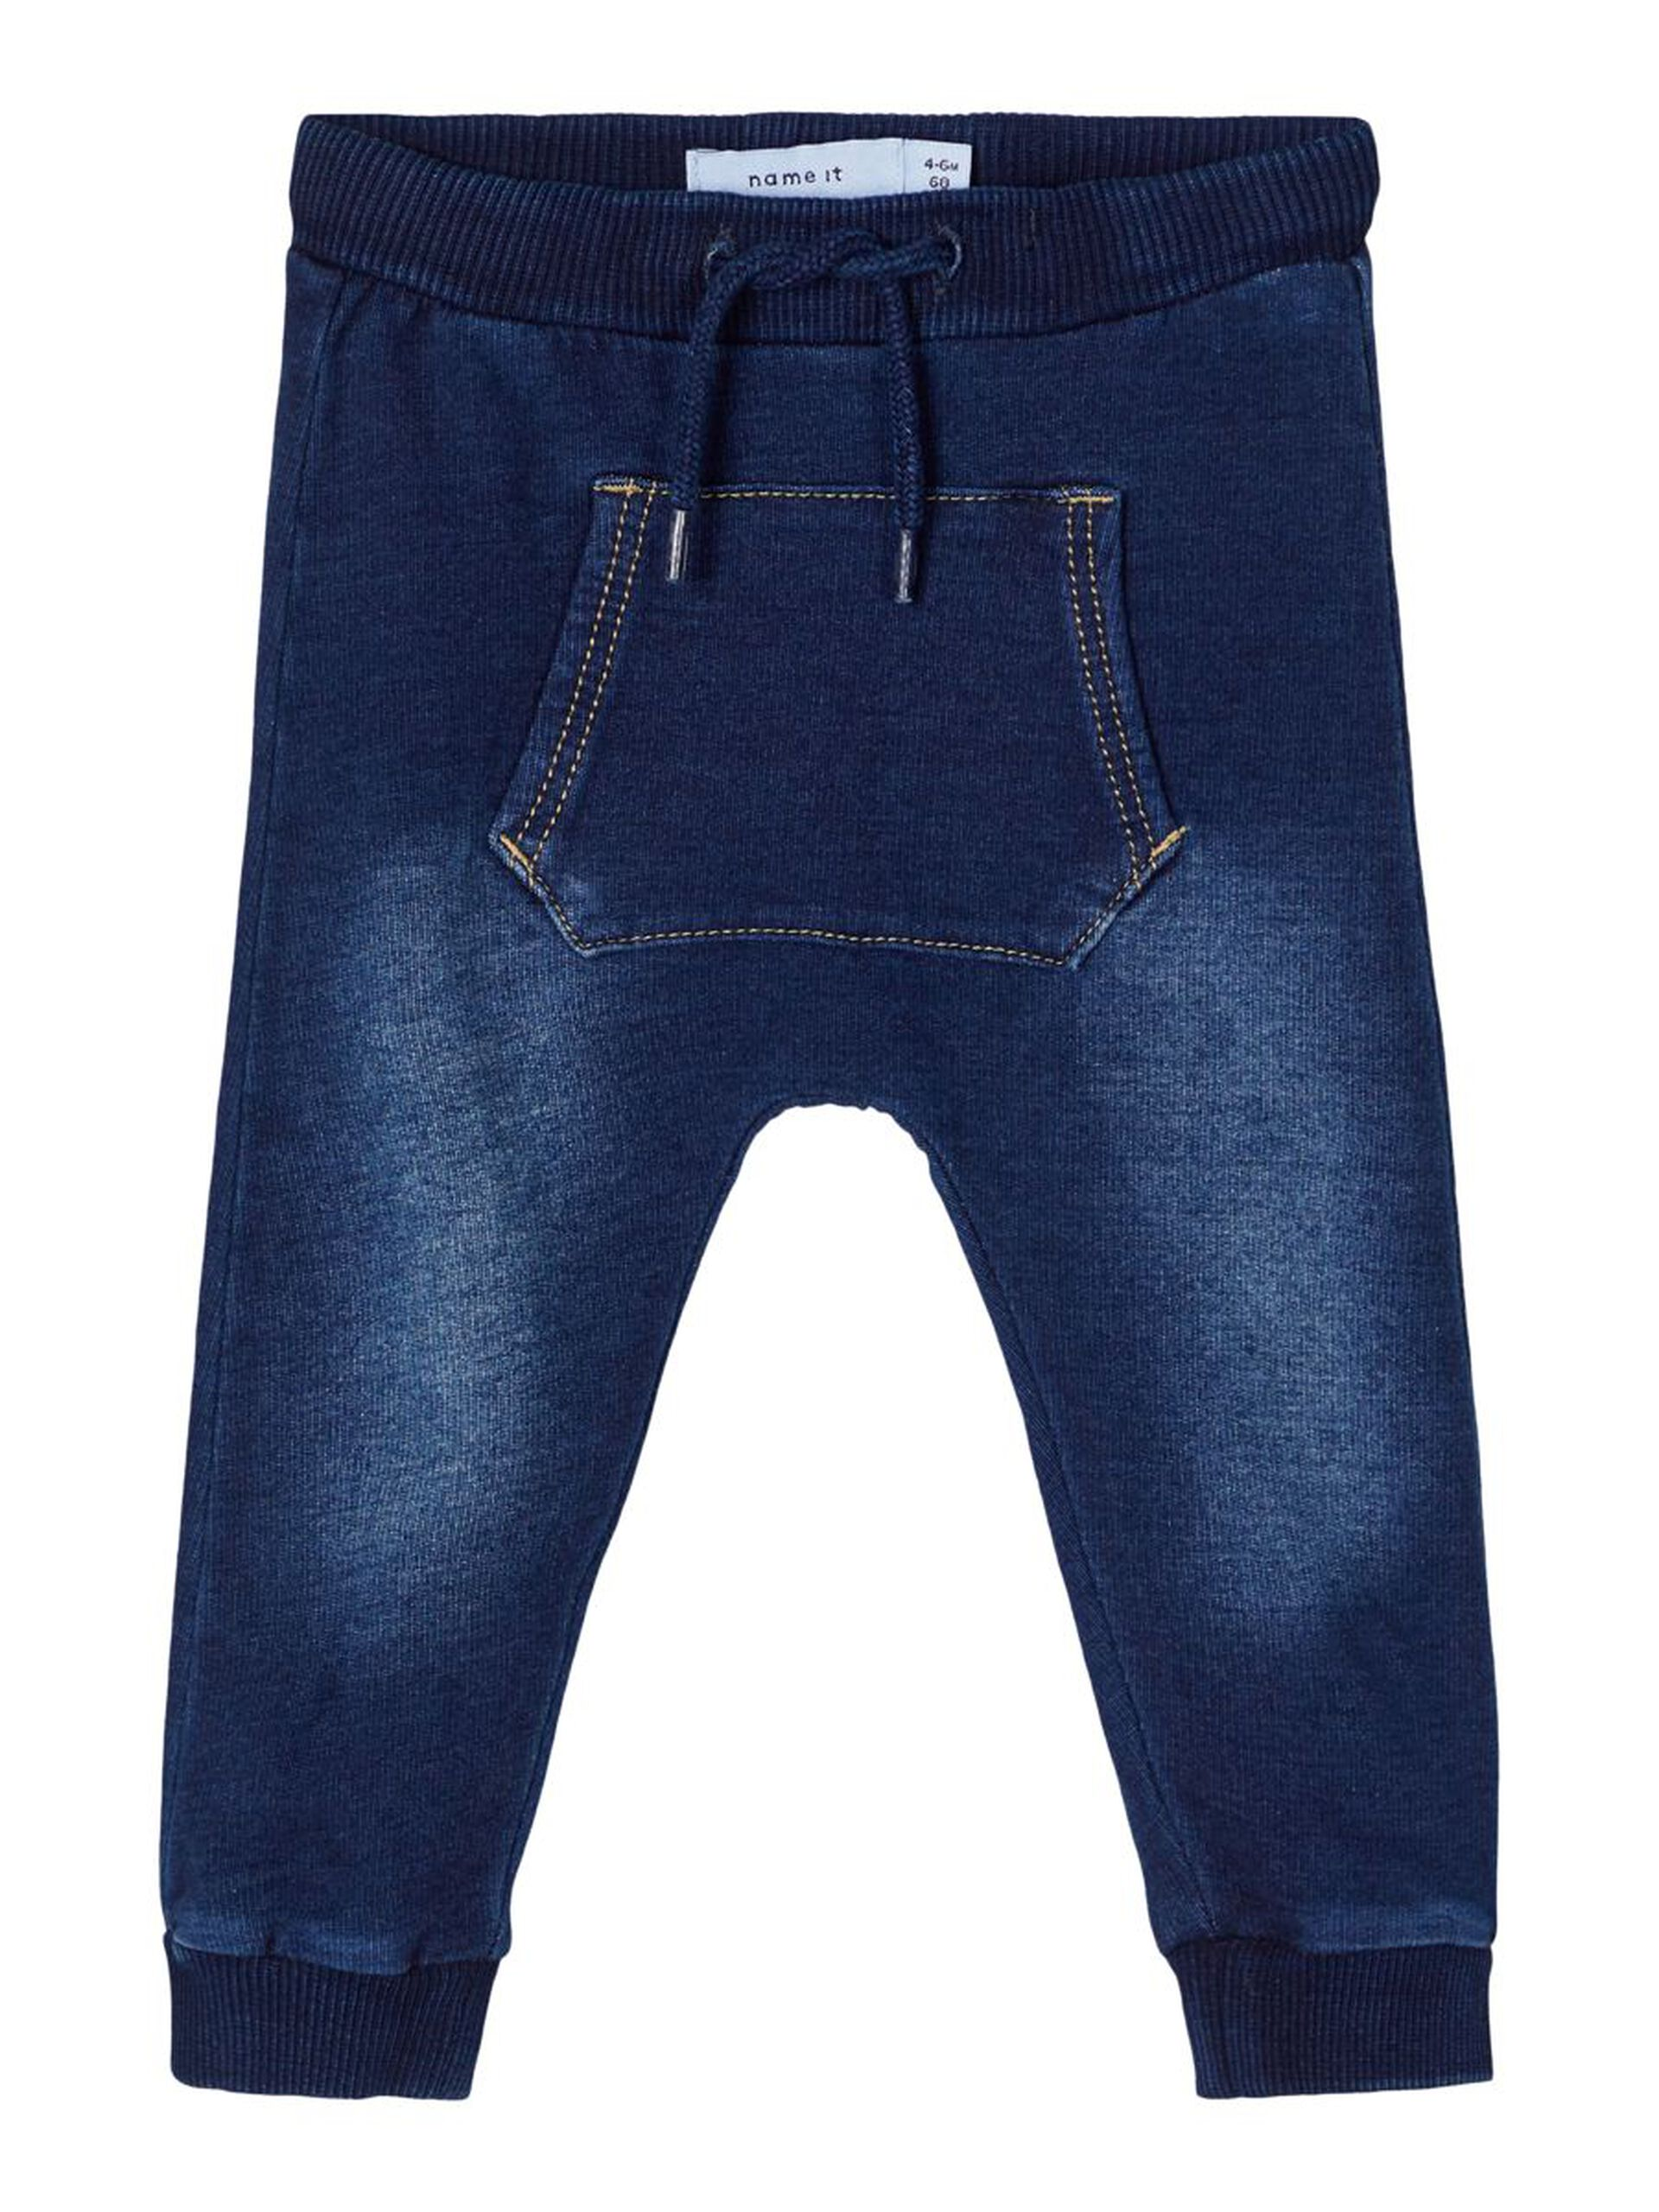 Blå denimbukse baby – Name It myk blå denimbukse  – Mio Trend